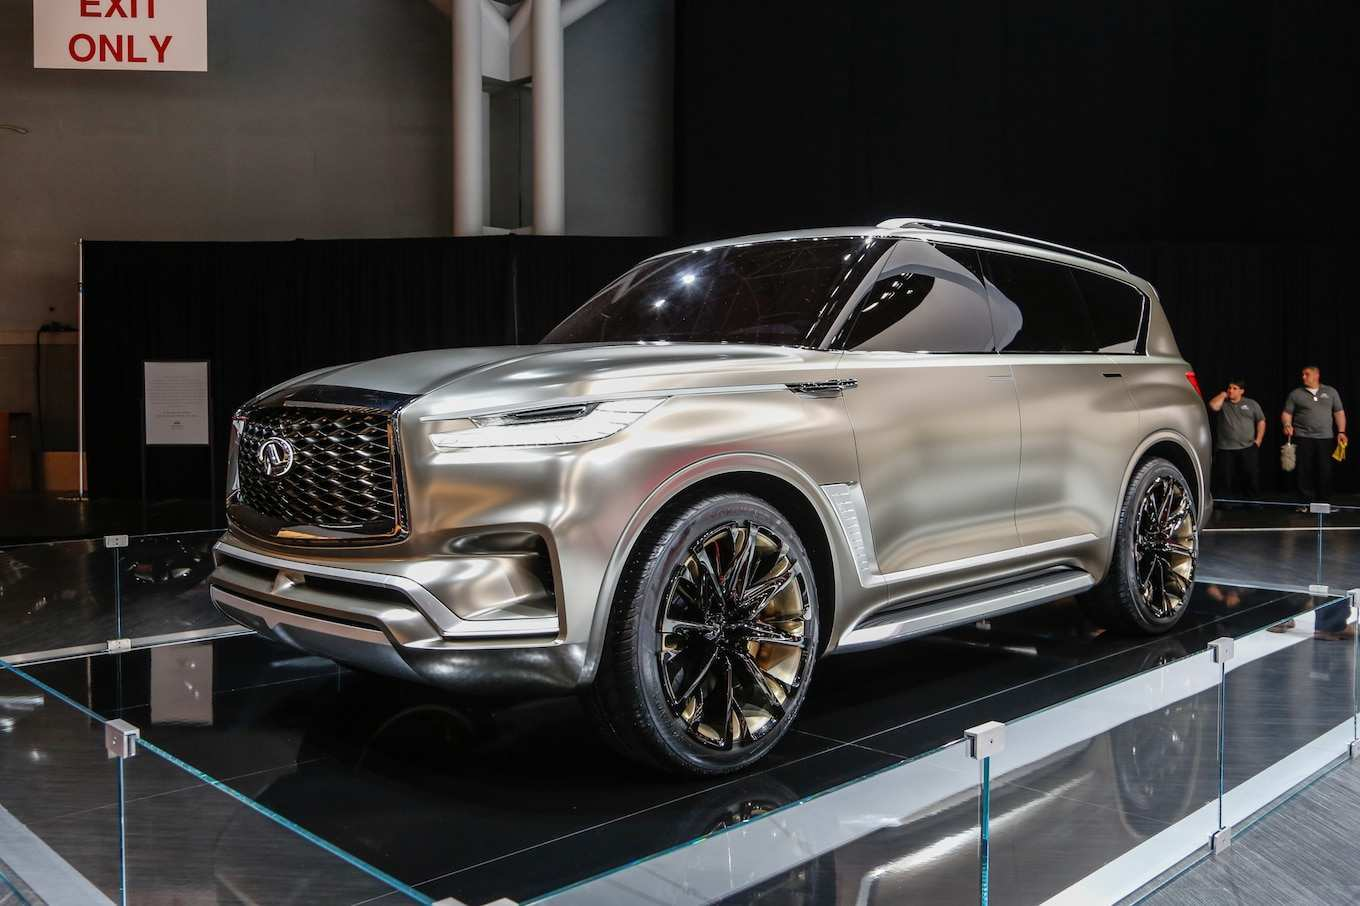 86 All New Infiniti Qx80 2020 New Concept with Infiniti Qx80 2020